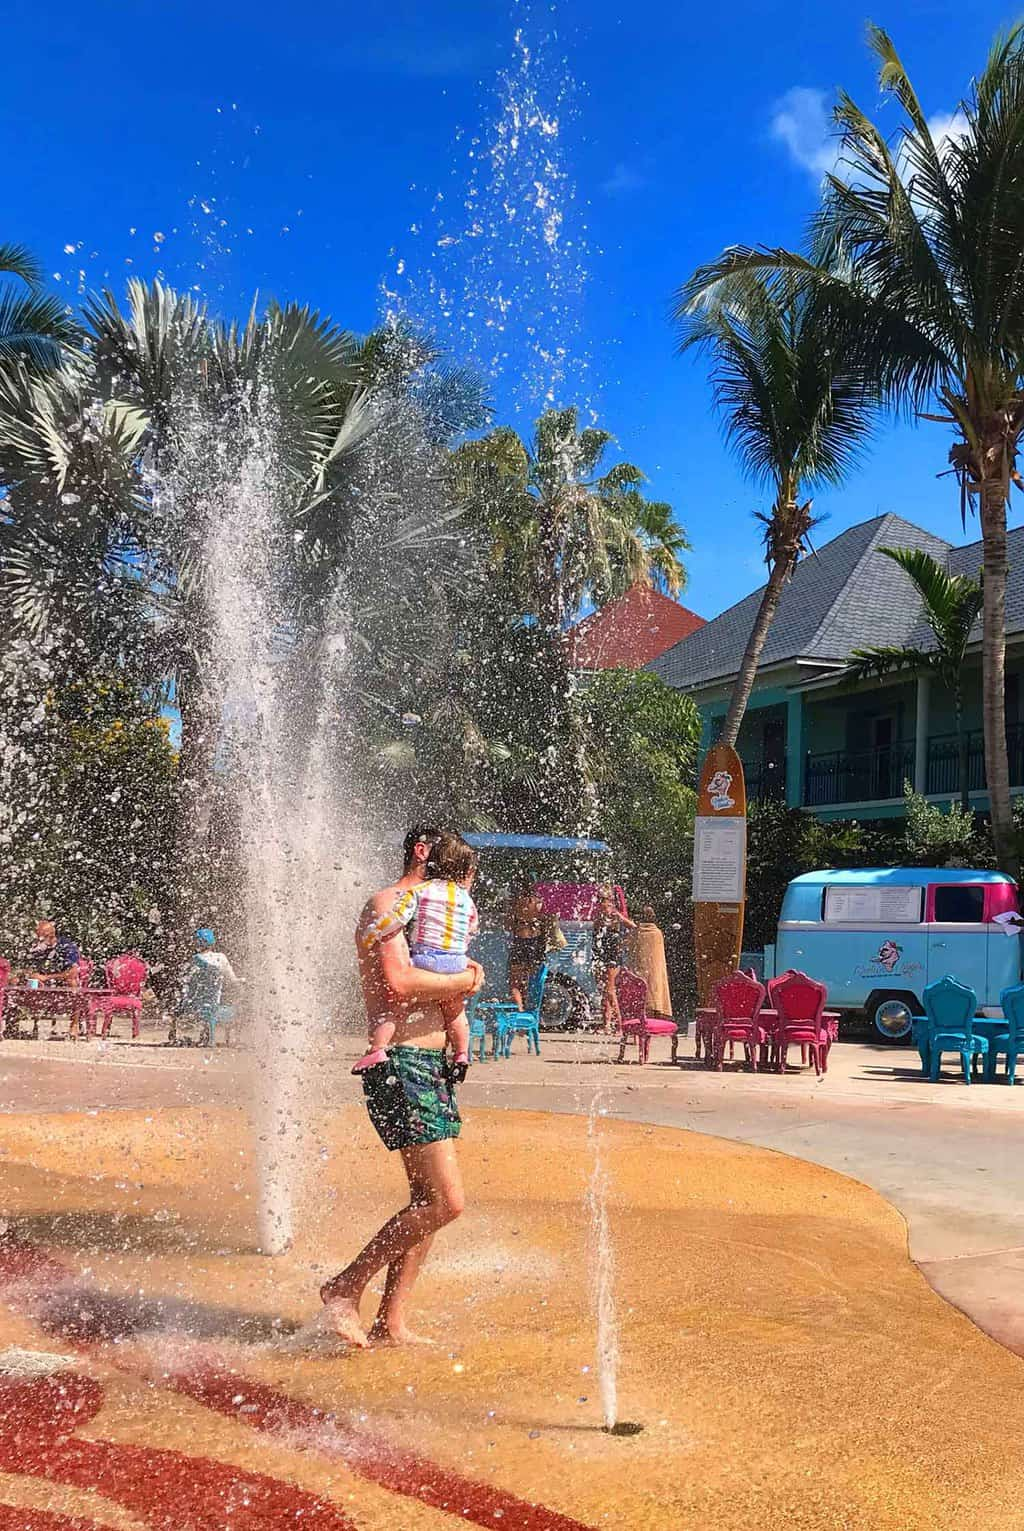 Our Trip To Beaches Turks & Caicos — A Family Friendly All-inclusive Resort, the perfect vacation for big groups and families with kids! by top Houston lifestyle blogger Ashley Rose of Sugar & Cloth